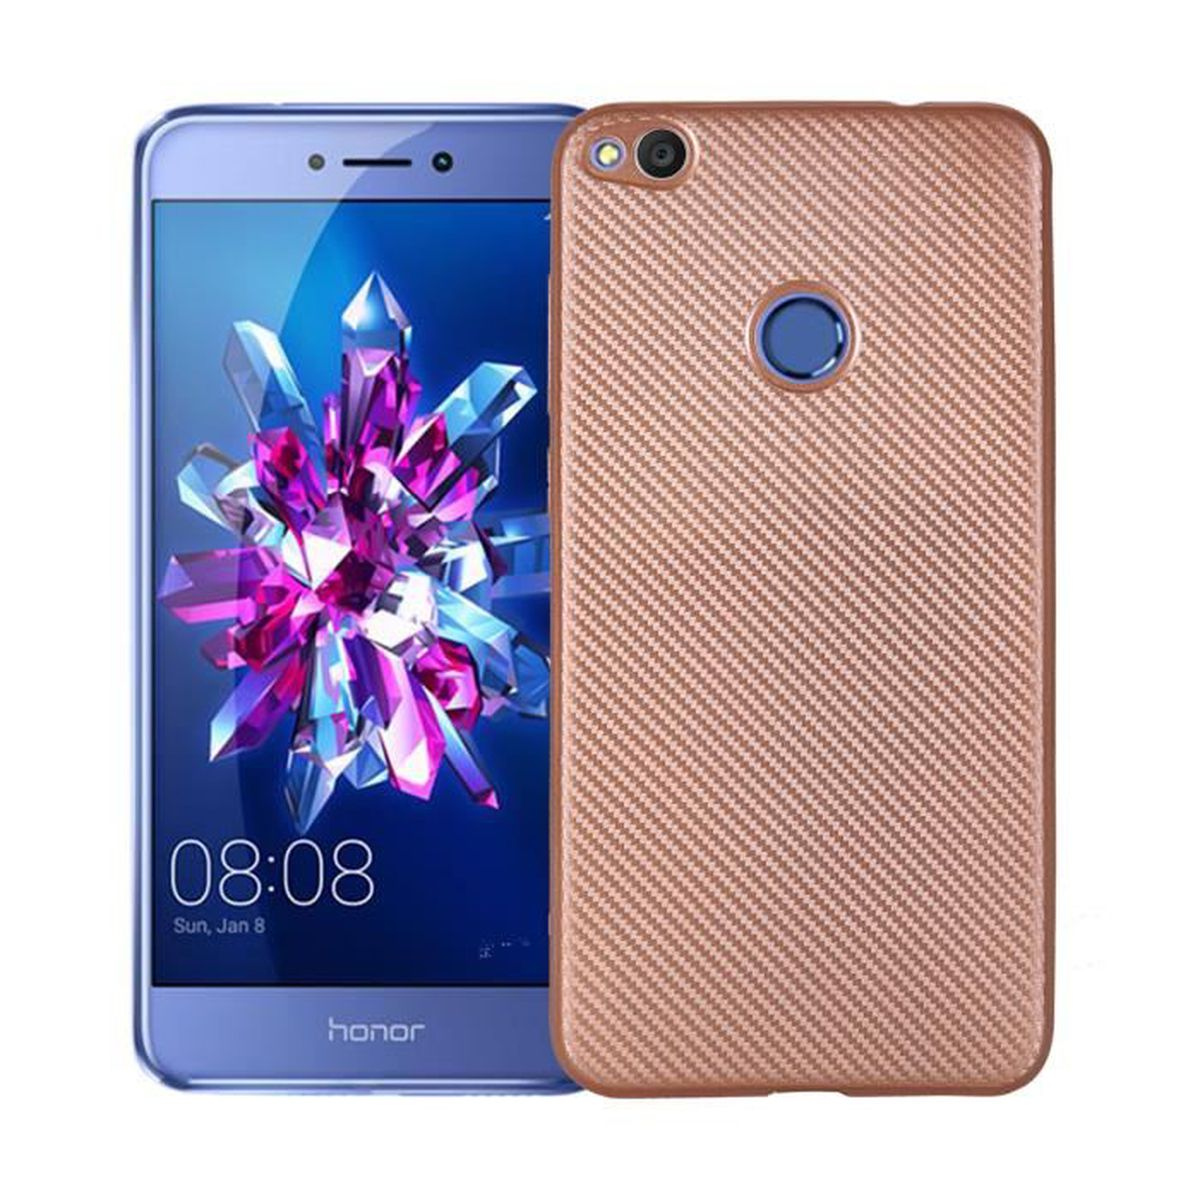 coque ultra mince huawei p8 lite 2017